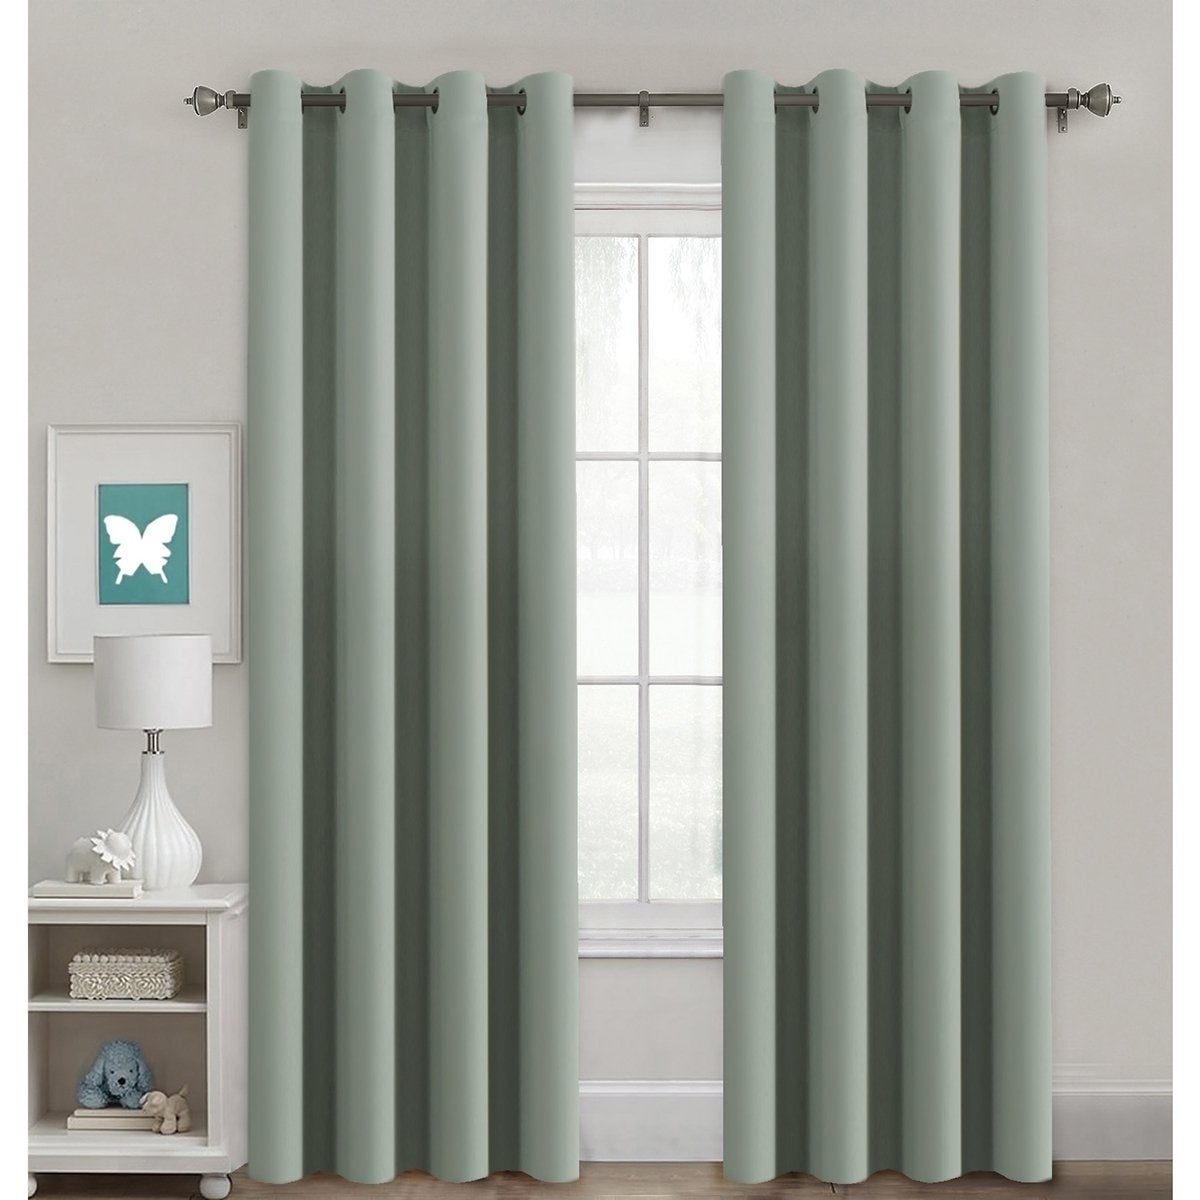 Primebeau Blackout Thermal Insulated Grommet Top Solid Curtain Panel Pair Within Solid Insulated Thermal Blackout Curtain Panel Pairs (View 20 of 30)